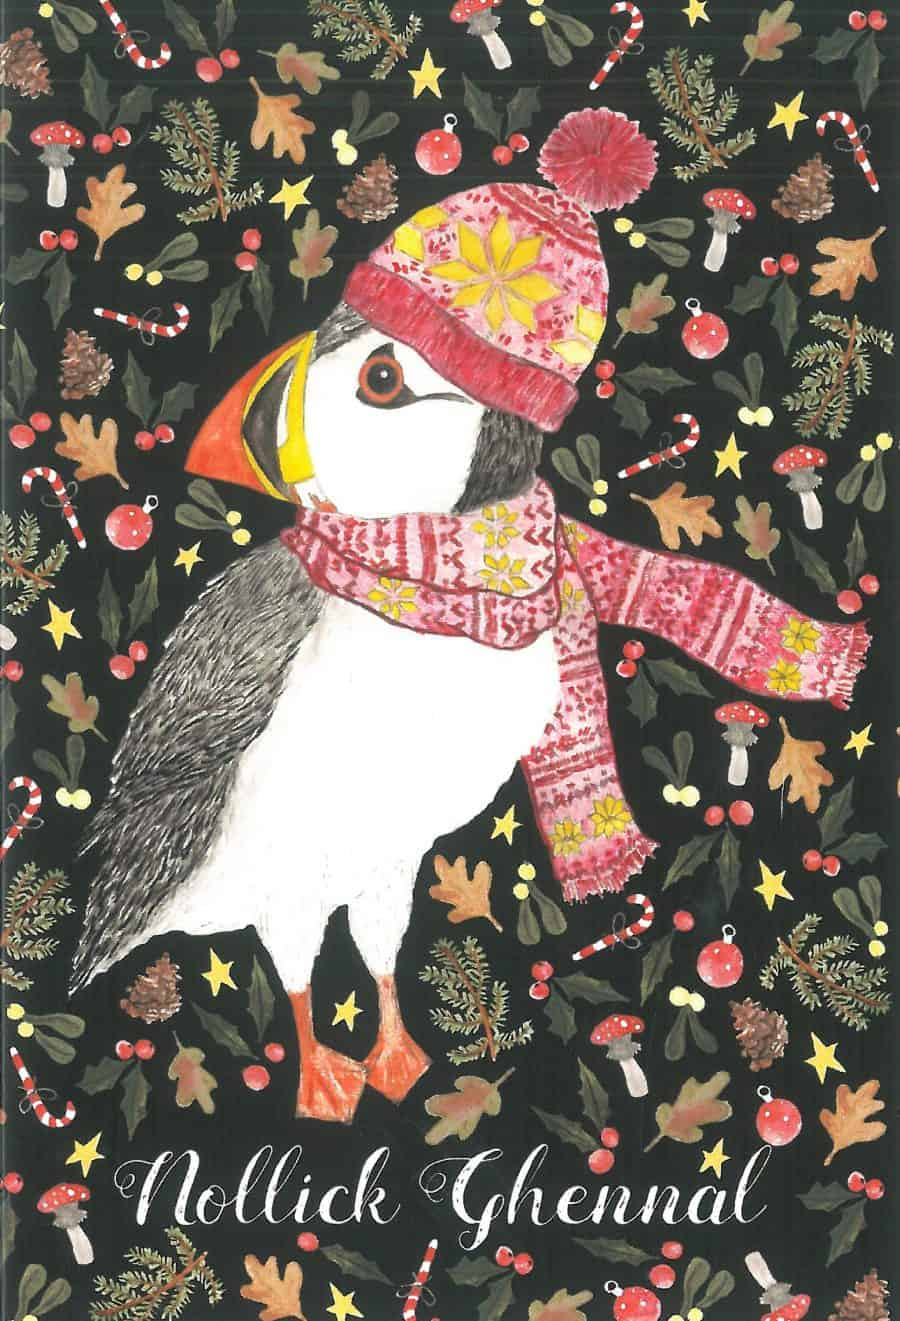 Puffin Christmas Card image copyright Alice Rose Fayle